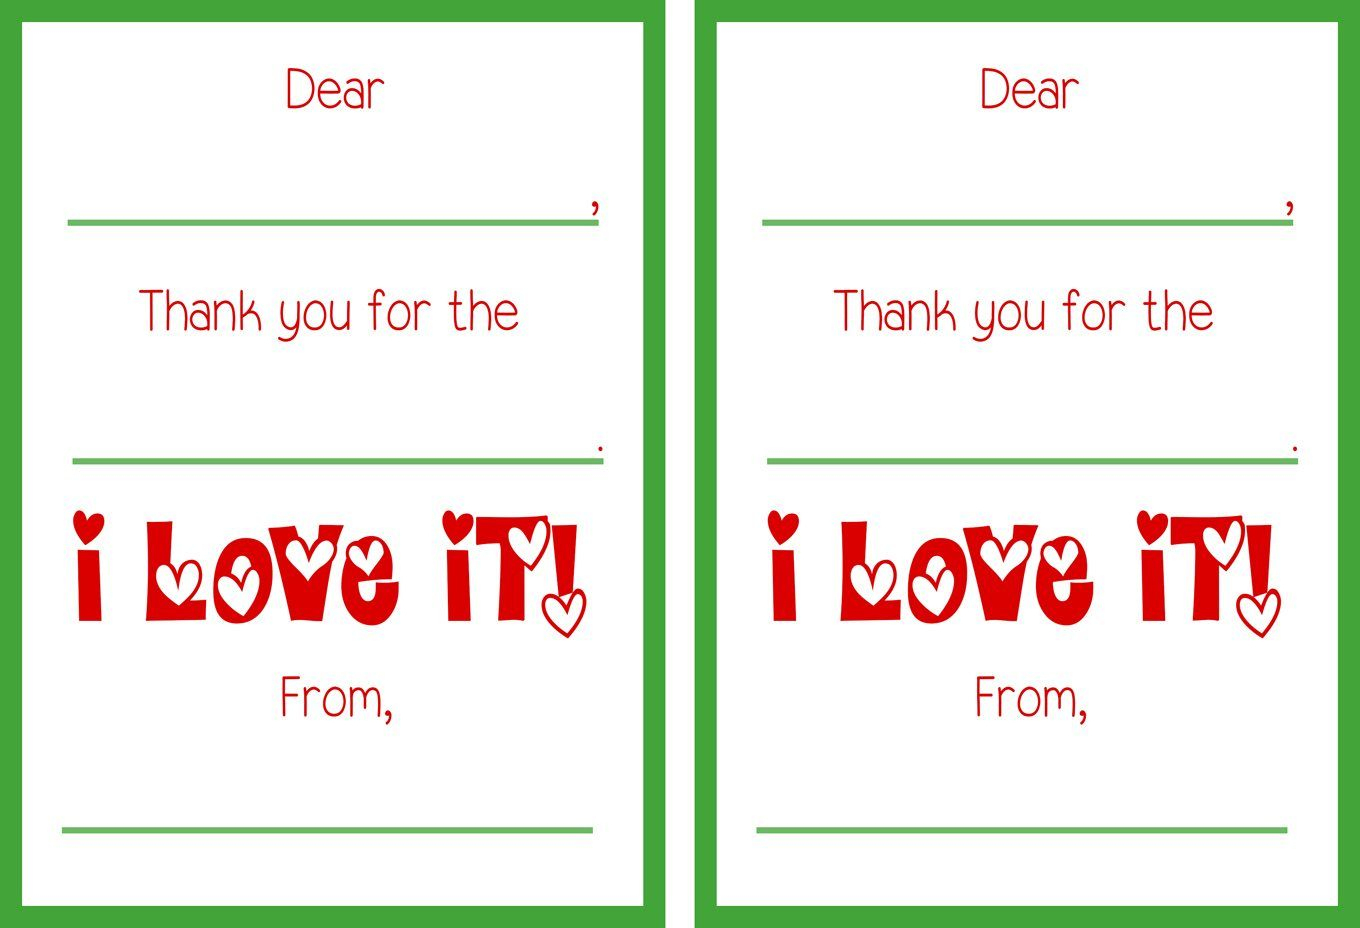 Free Printable Christmas Thank You Cards | Gift Ideas | Thank You - Christmas Thank You Cards Printable Free